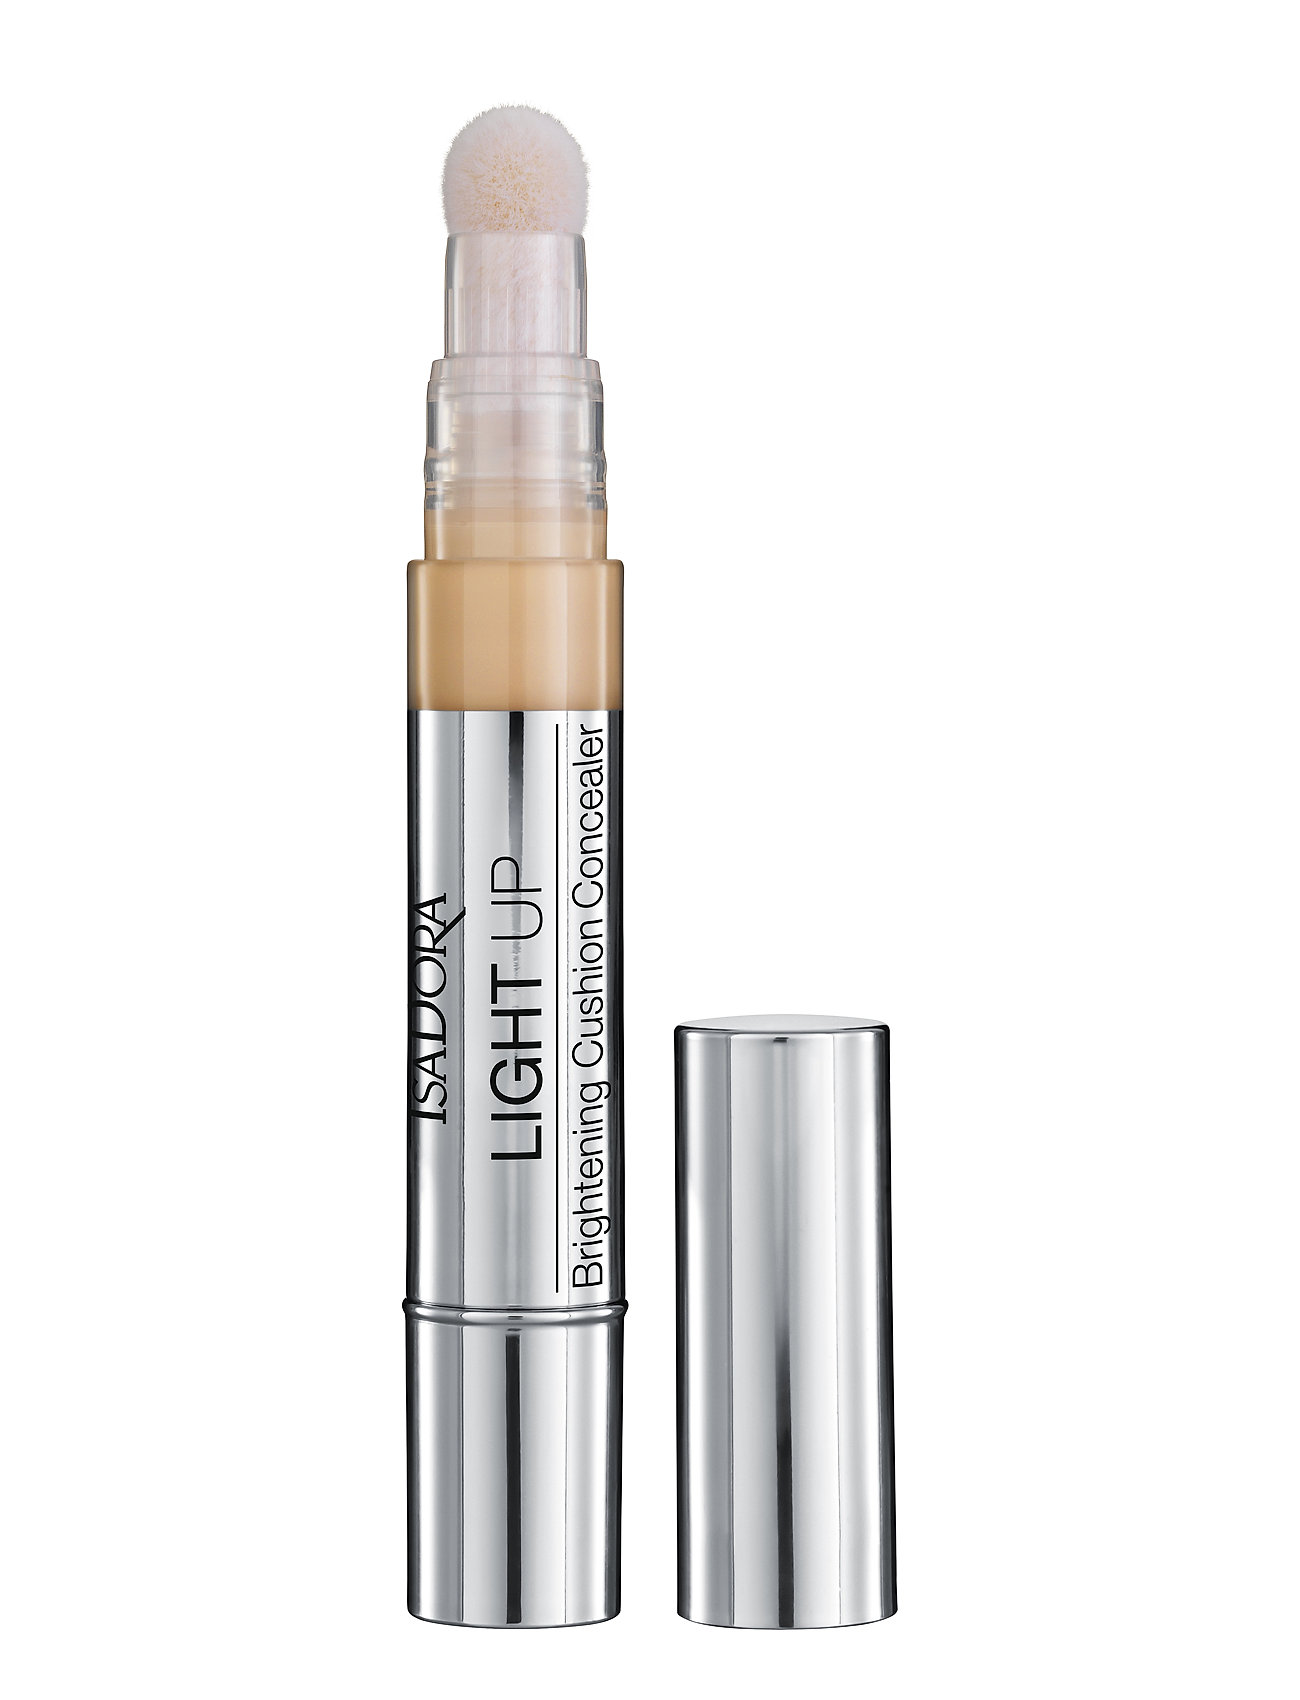 Image of Light Up Concealer 05 Warmsand Light Up Concealer Concealer Makeup Isadora (3415491517)